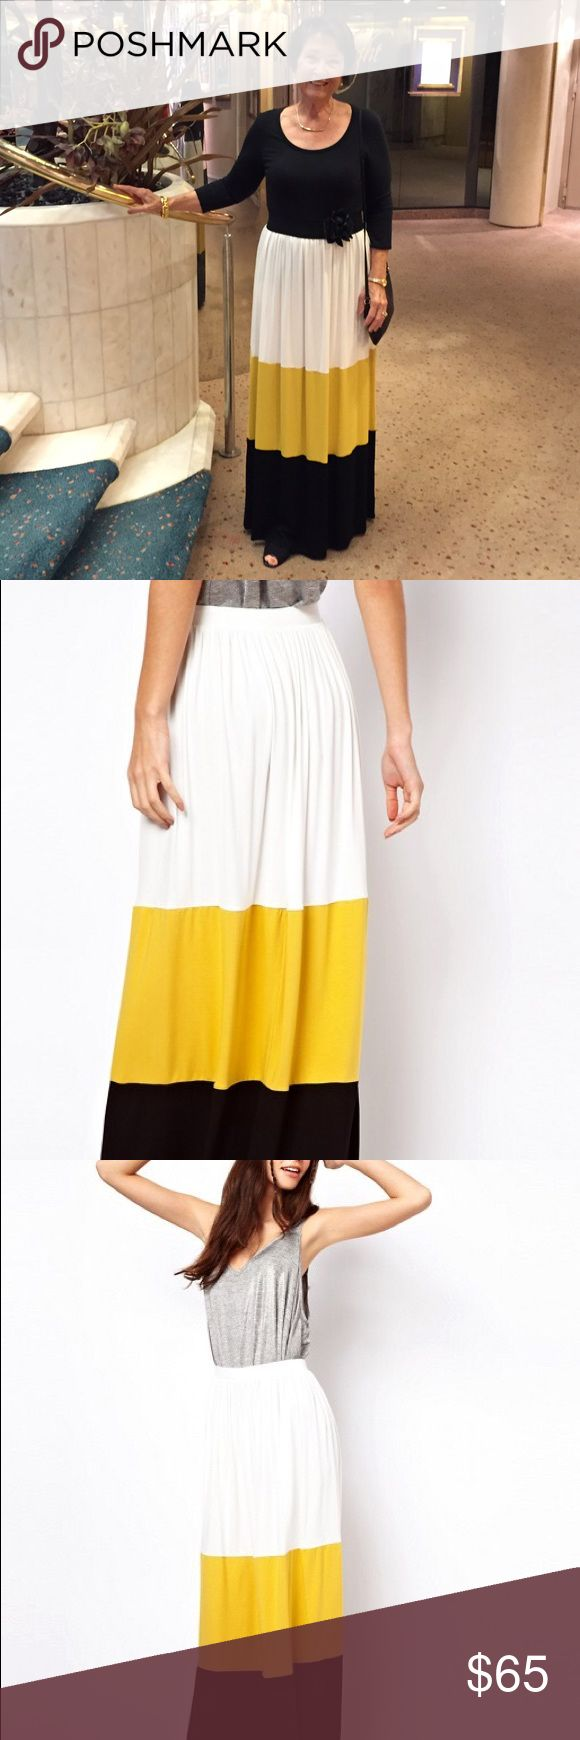 """White, Yellow + Black Colorblock Maxi Skirt Beautiful and versatile maxi skirt in a colorblocked style! Length {44"""".} Waist is elastic and stretches to around 34"""". Viscose and Elastane blend. Sold out style! Offers welcome through button. US 2, UK 6, Euro 34. Colors are black, ivory white and mustard yellow. Skirt looks exactly as pictured. ASOS Skirts Maxi"""